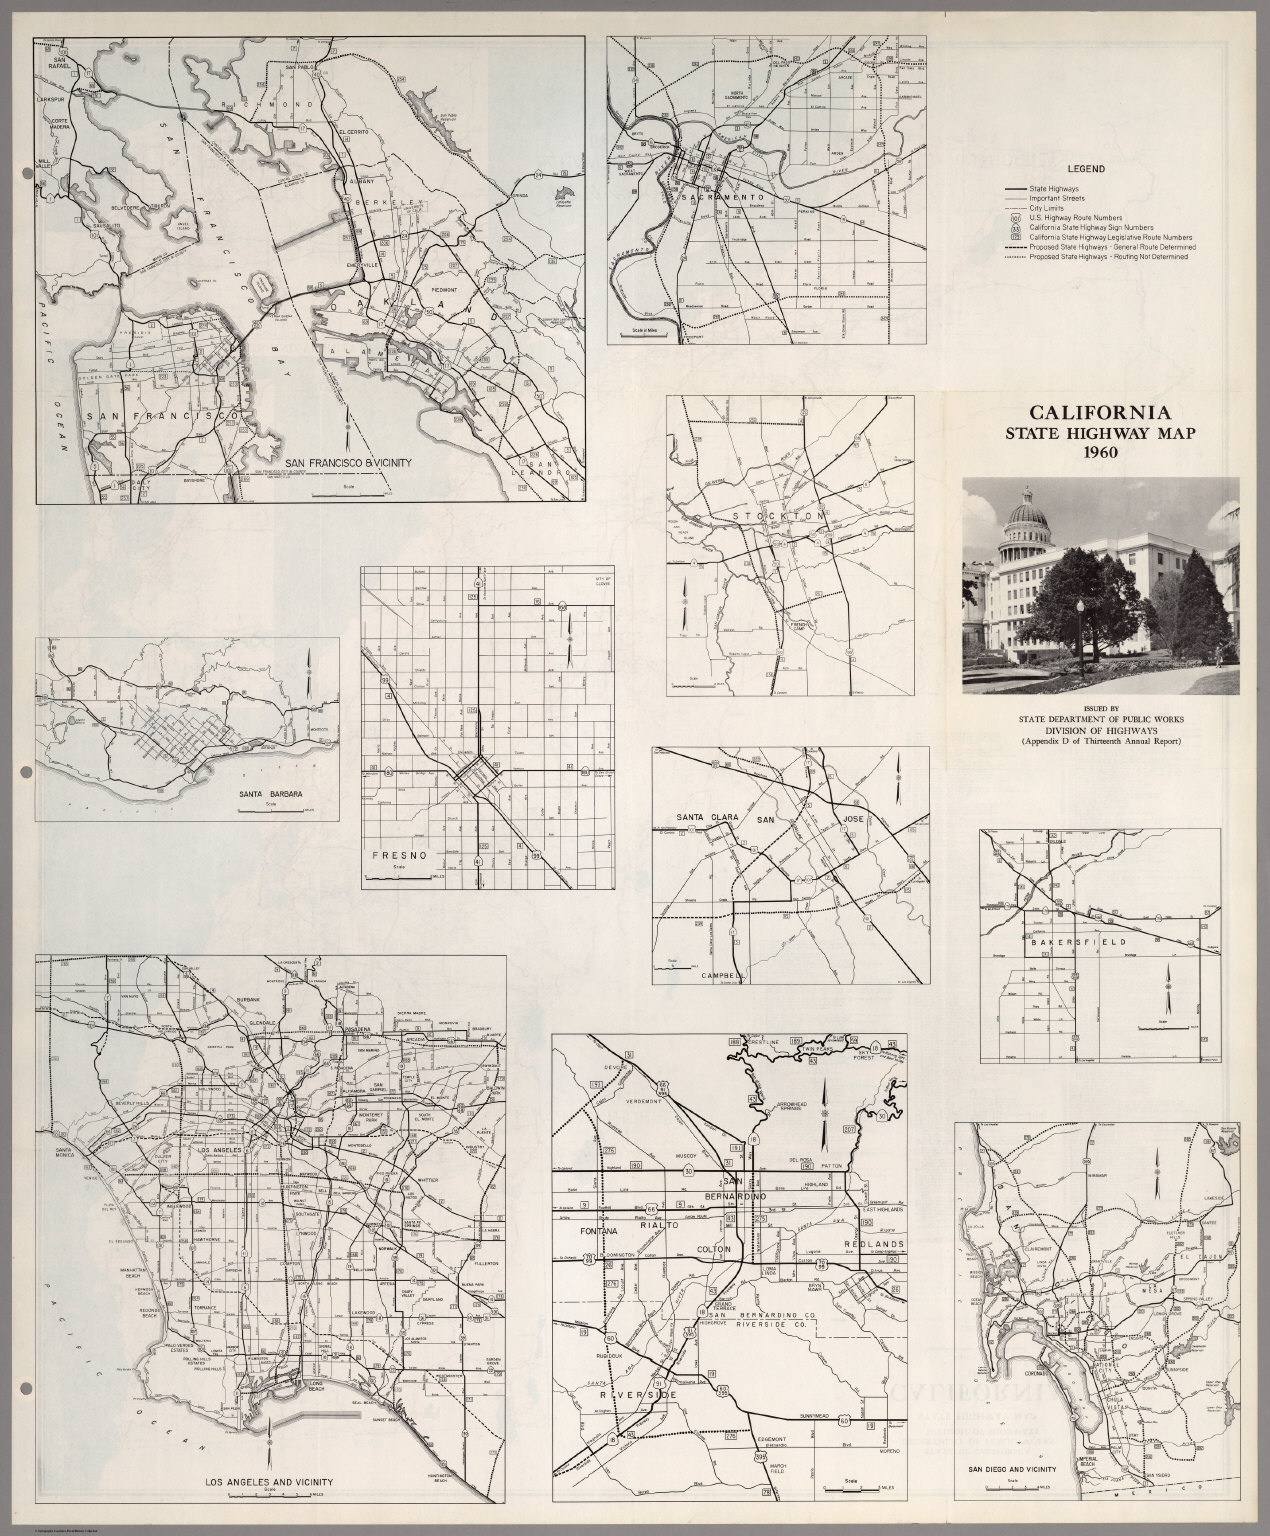 (Verso) State Highway Map, California, 1960.